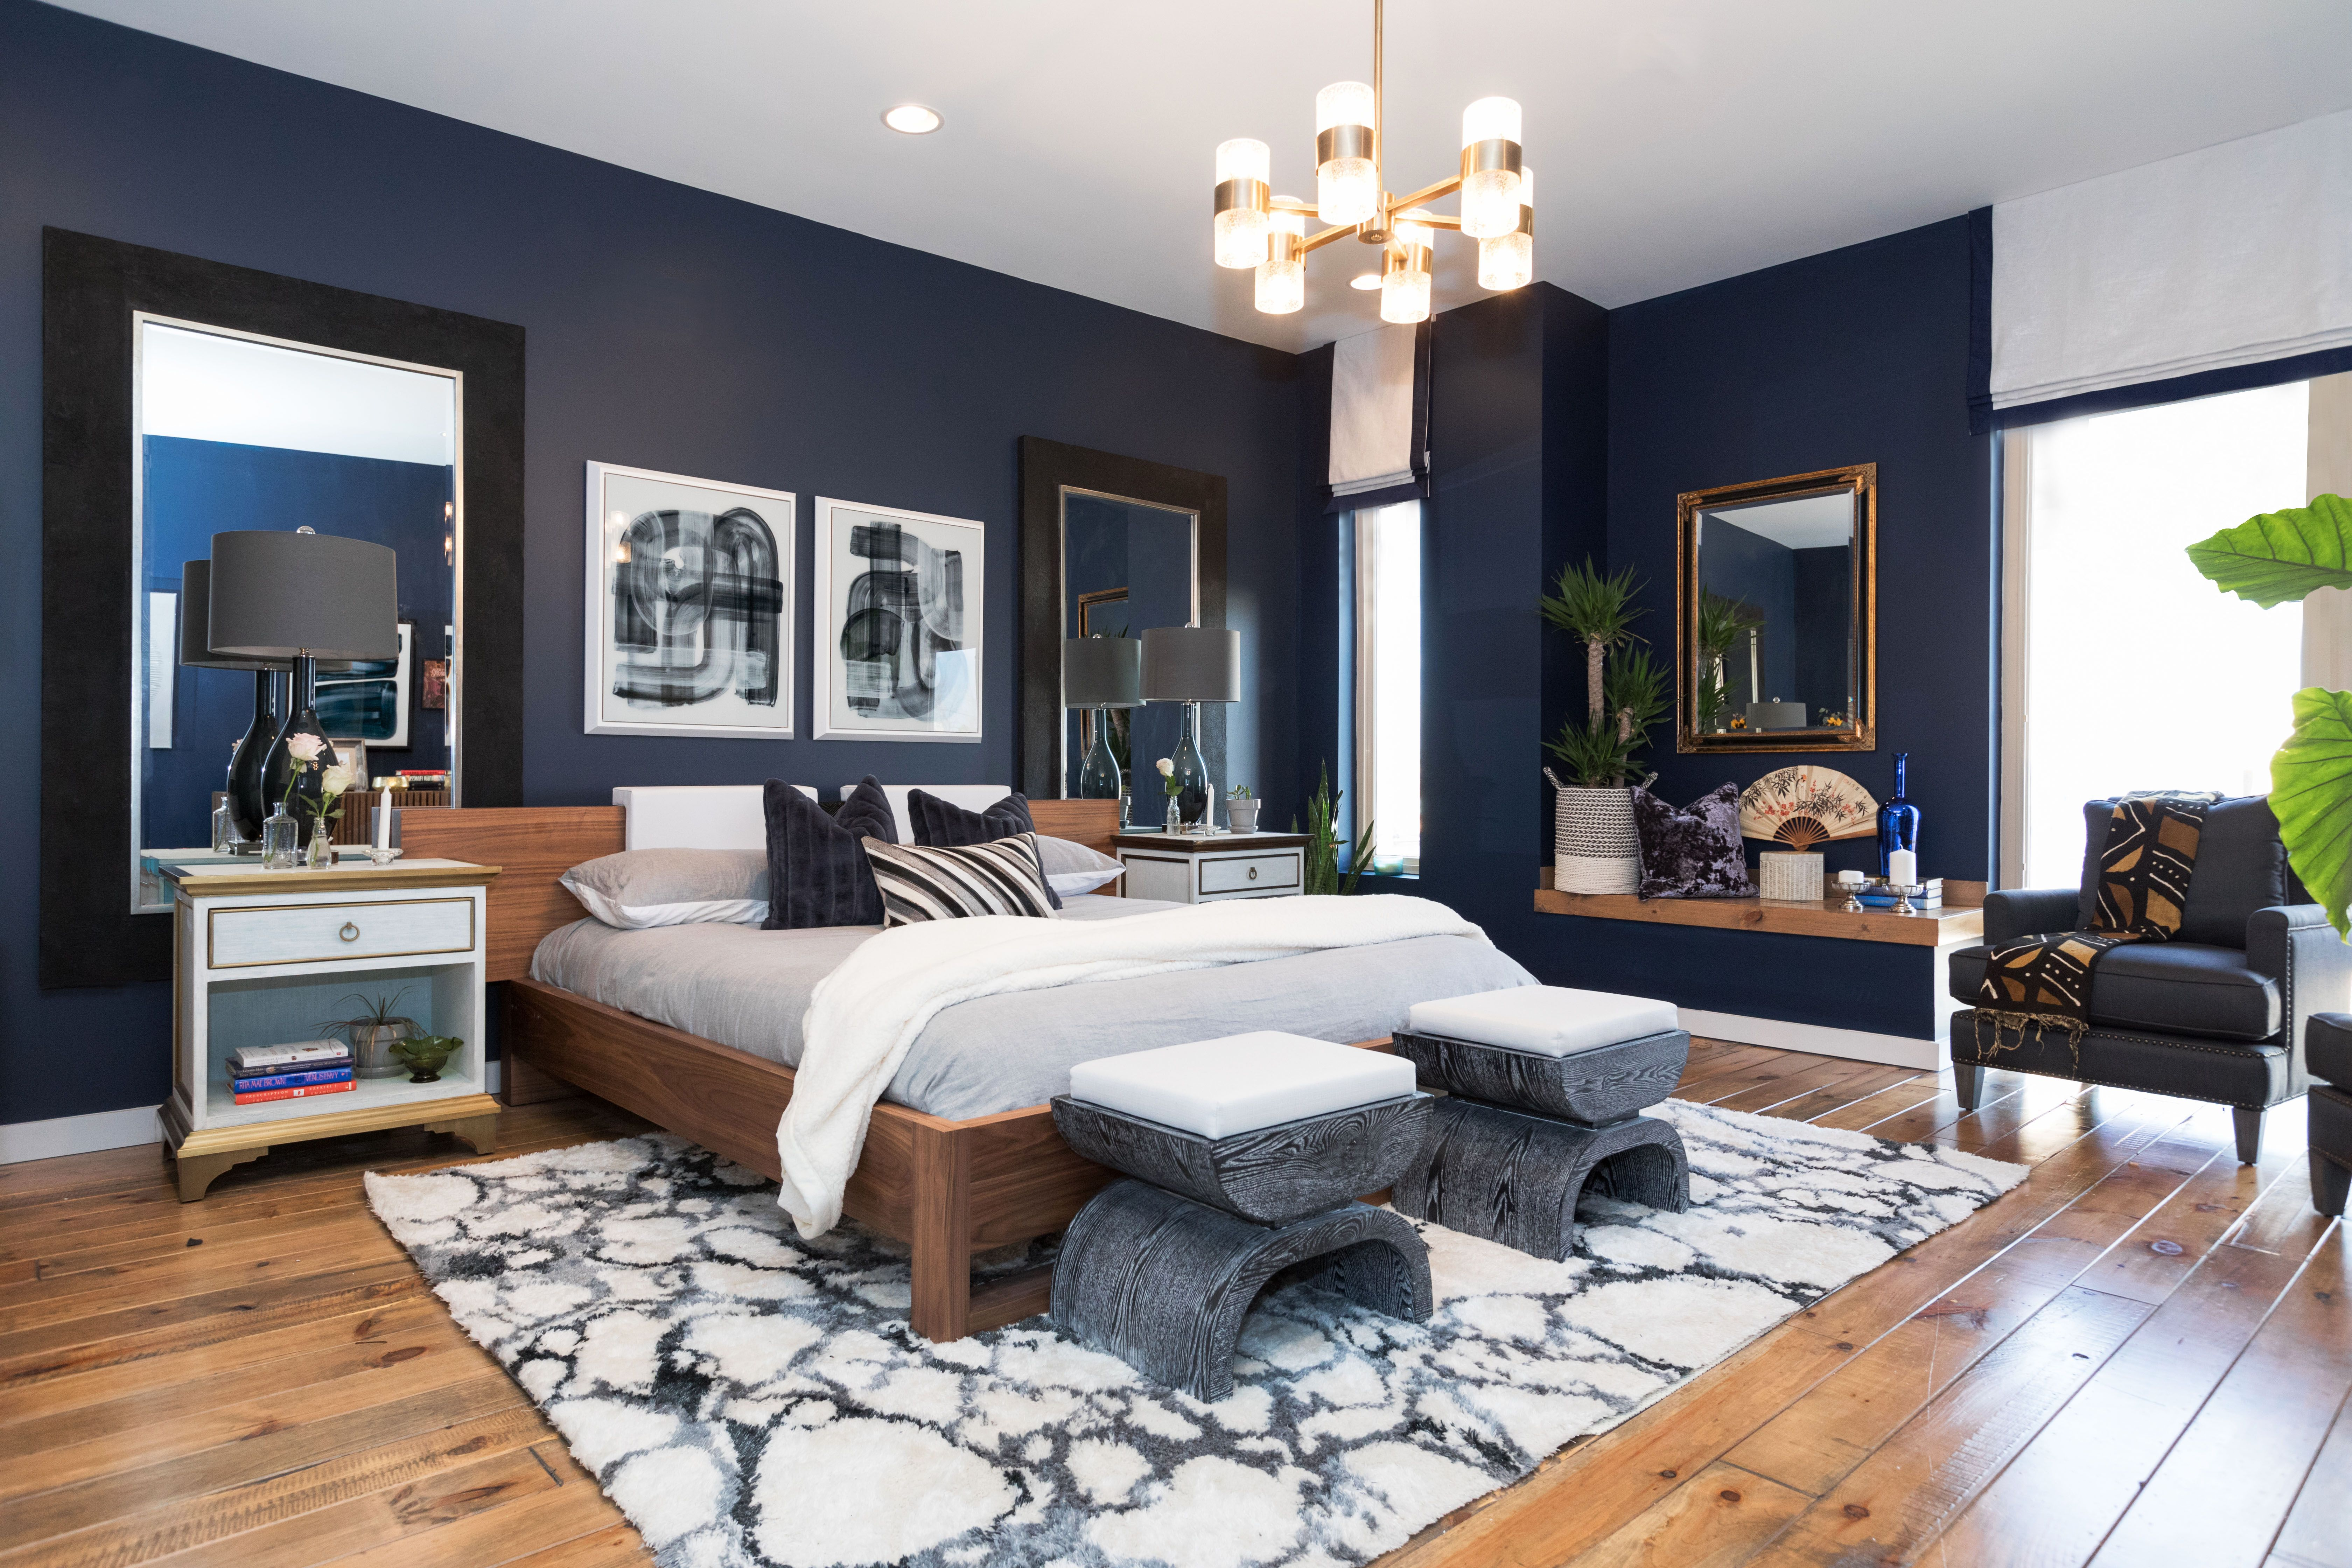 Navy Blue Walls In This Eclectic Modern Master Bedroom Blue Master Bedroom Master Bedroom Colors Modern Master Bedroom